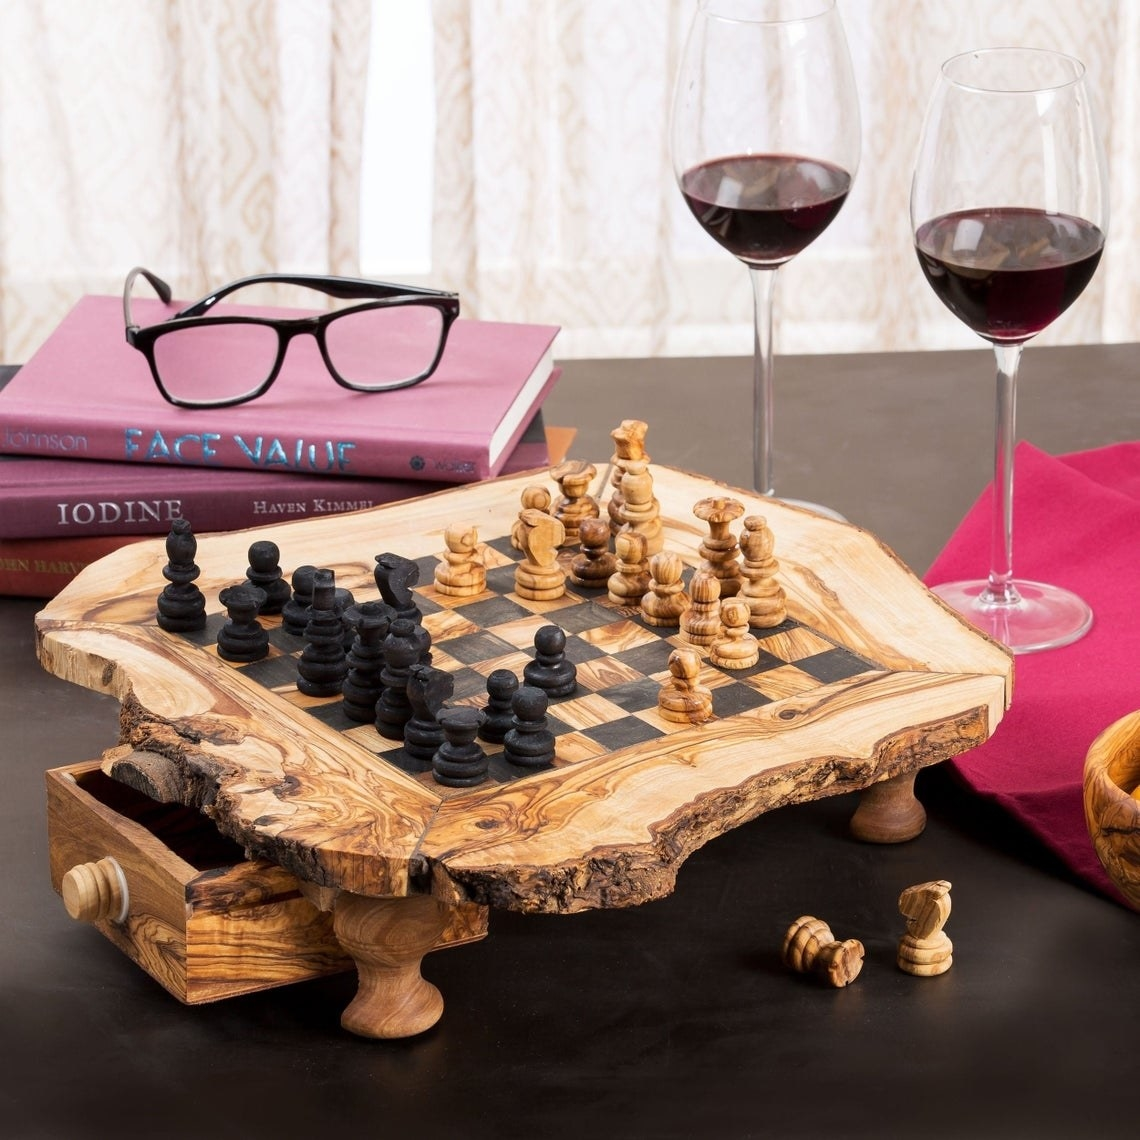 The chess board with pieces on top of it, there are wine glasses and books surrounding it